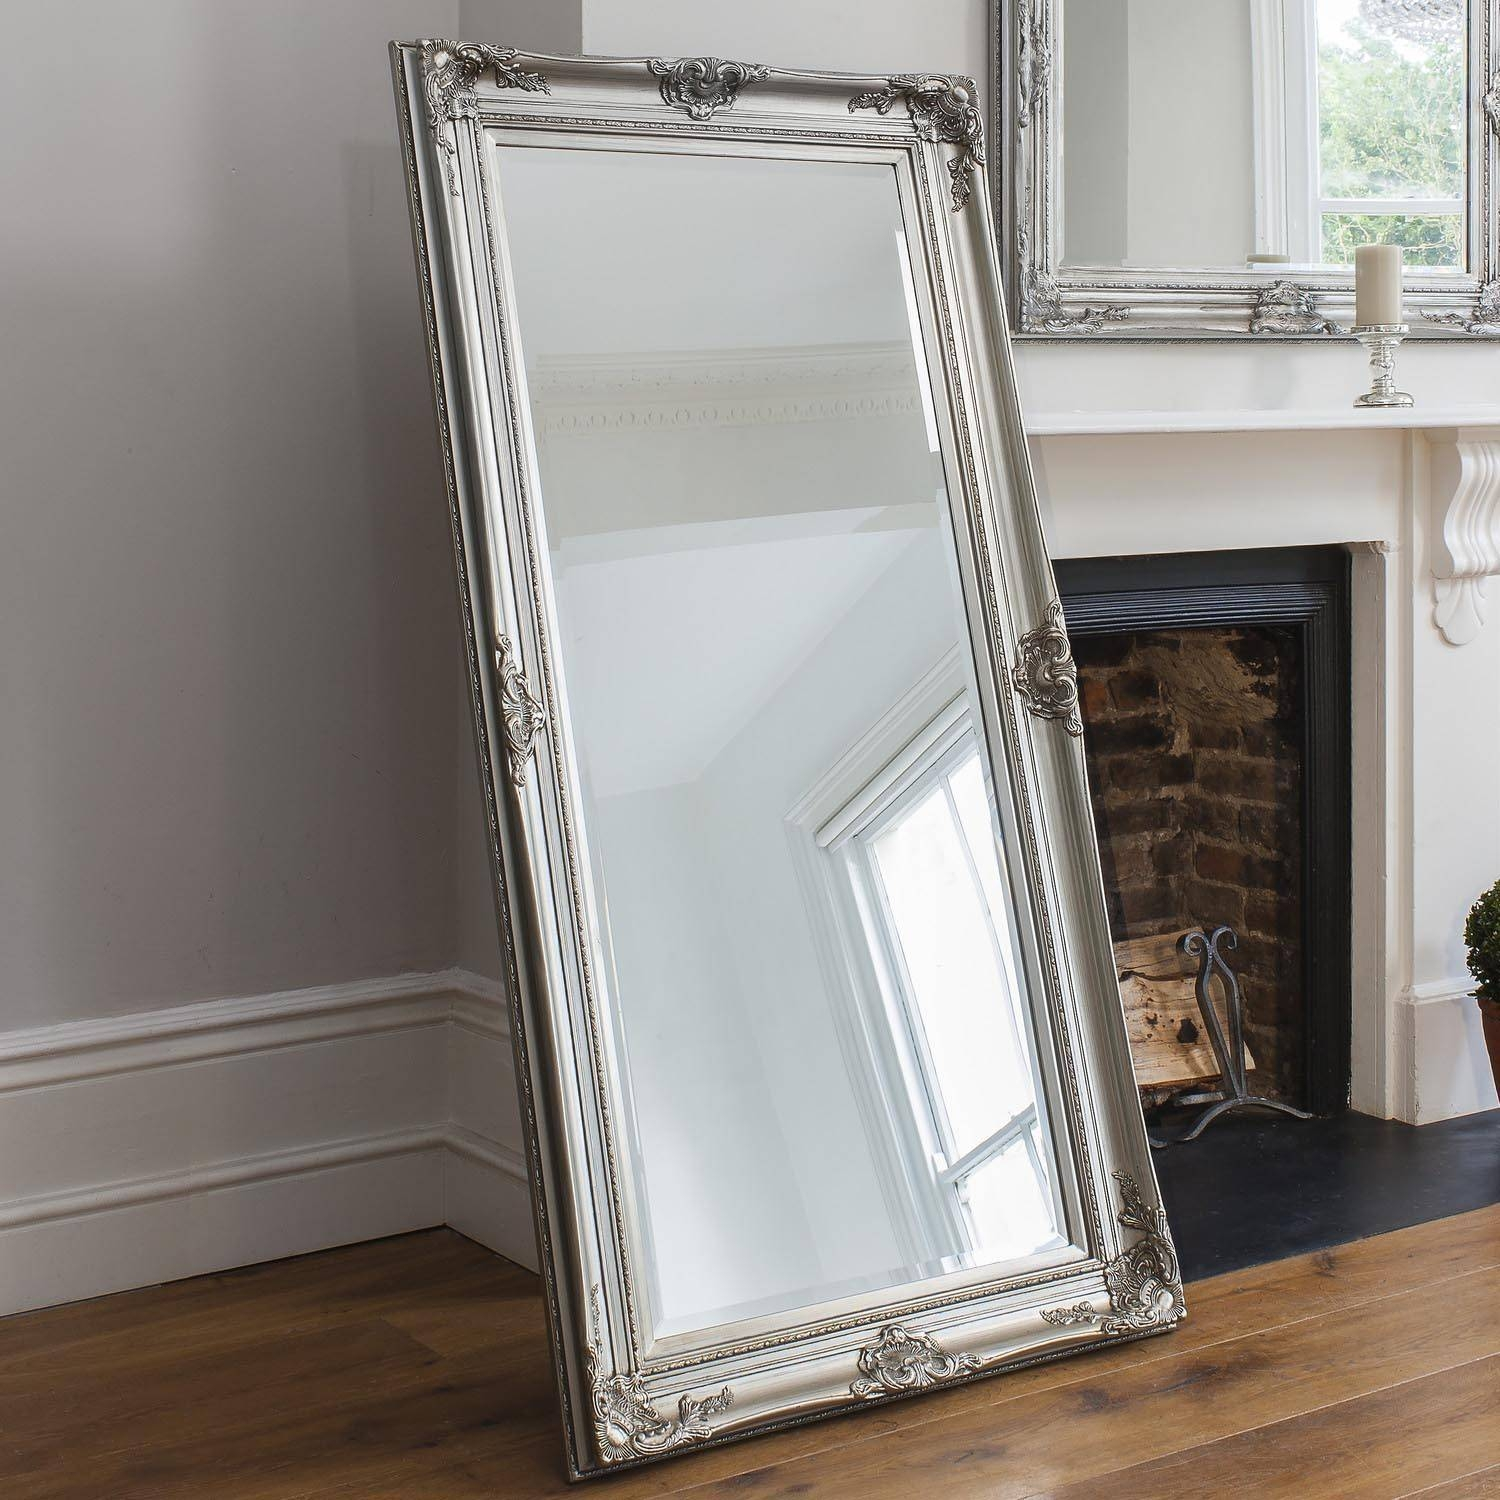 Mirror : Extra Large Floor Standing Mirrors | Floor Decoration with Extra Large Floor Standing Mirrors (Image 11 of 15)